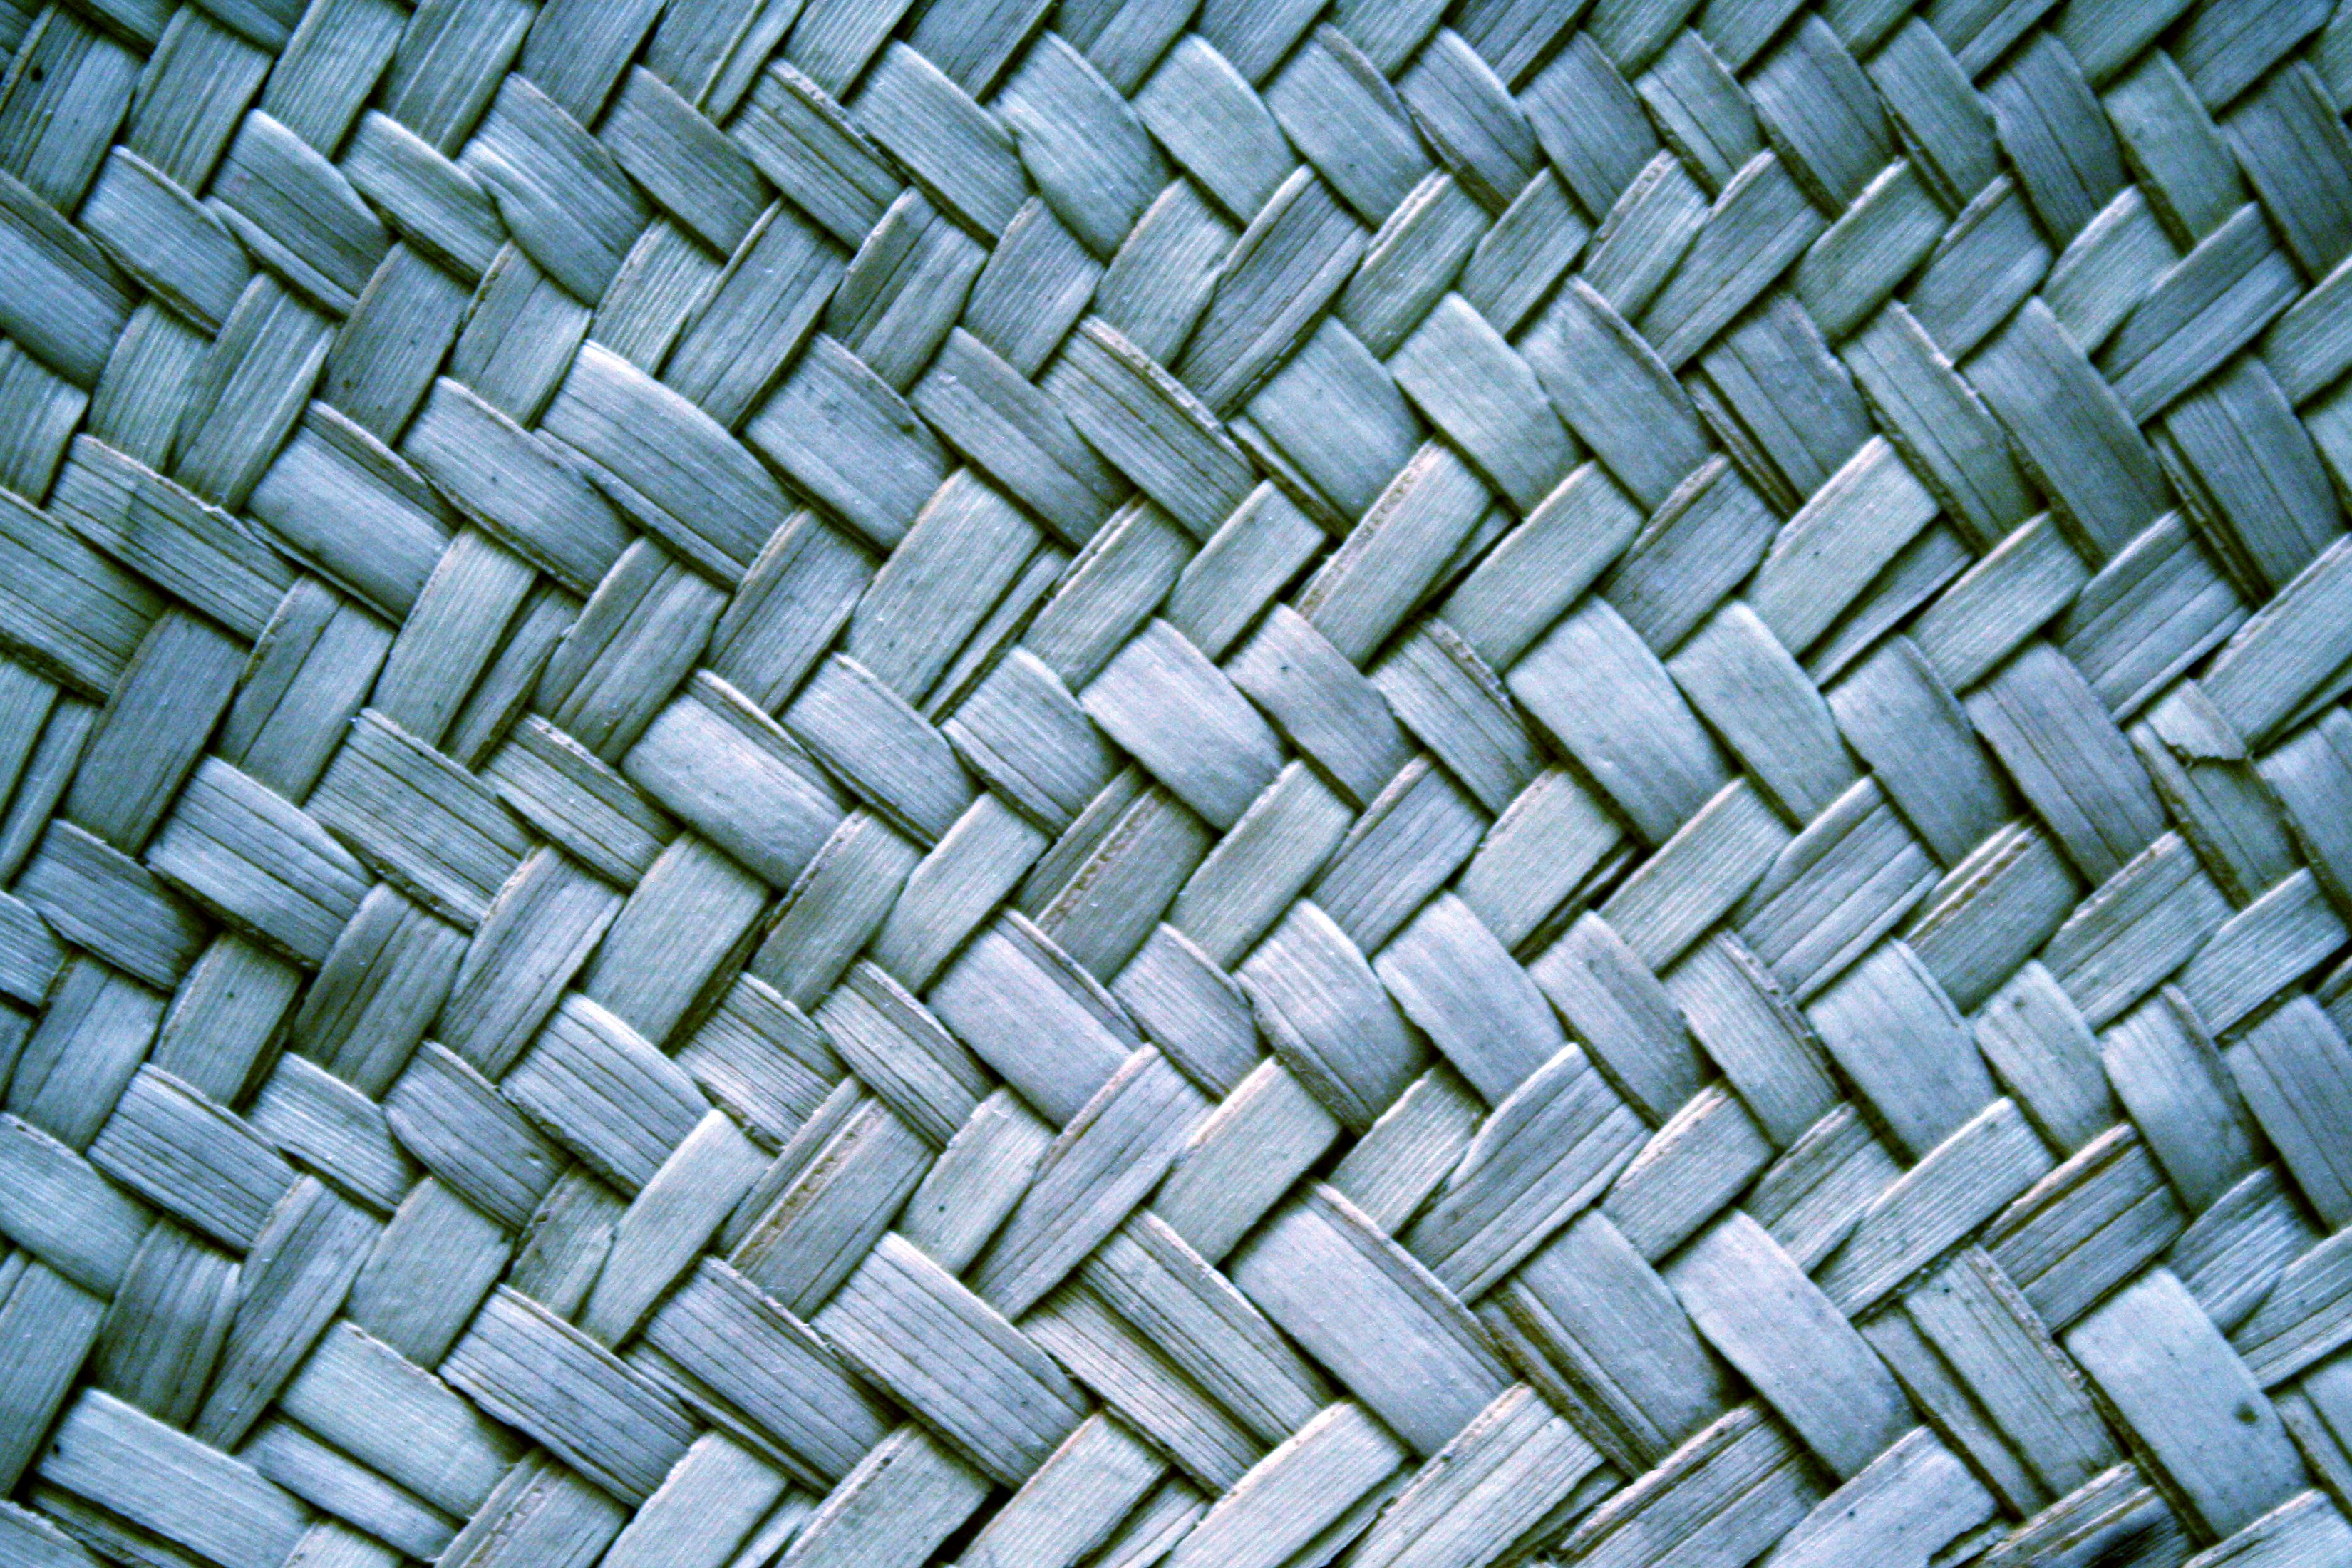 Blue Woven Straw Texture Picture Free Photograph